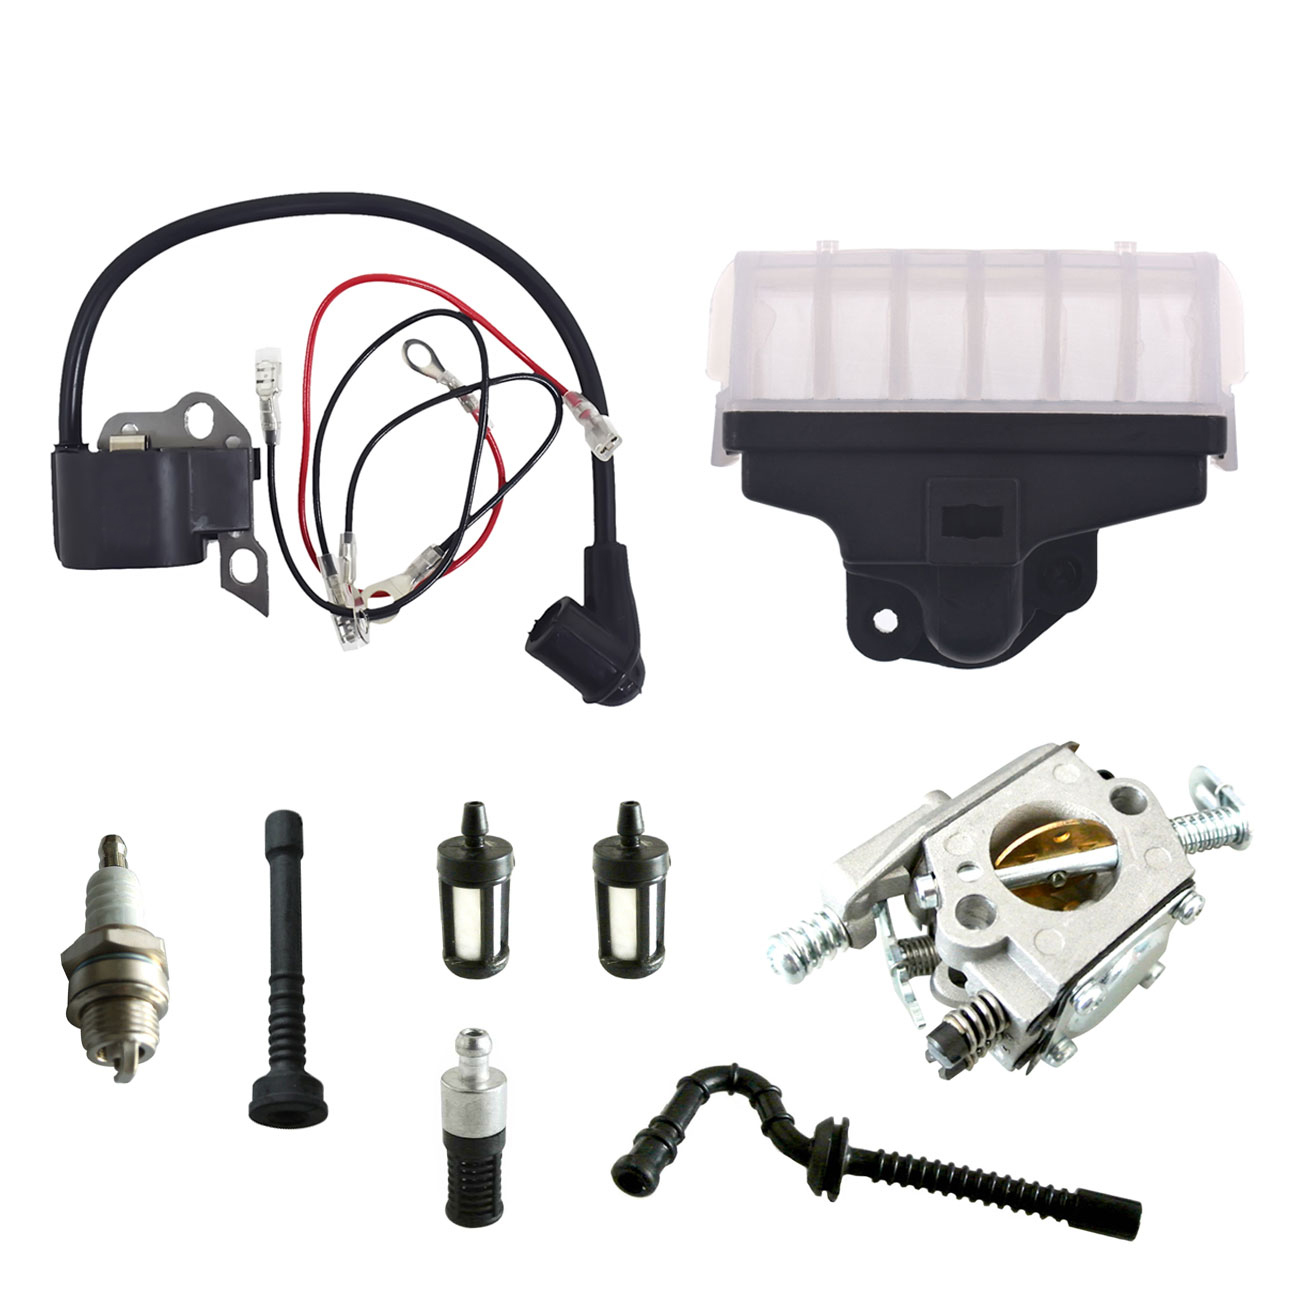 Image 2 - Ignition Coil Carburetor Kit Spark Plug For STIHL Chainsaw 021 023 025 MS210 MS230 MS250-in Chainsaws from Tools